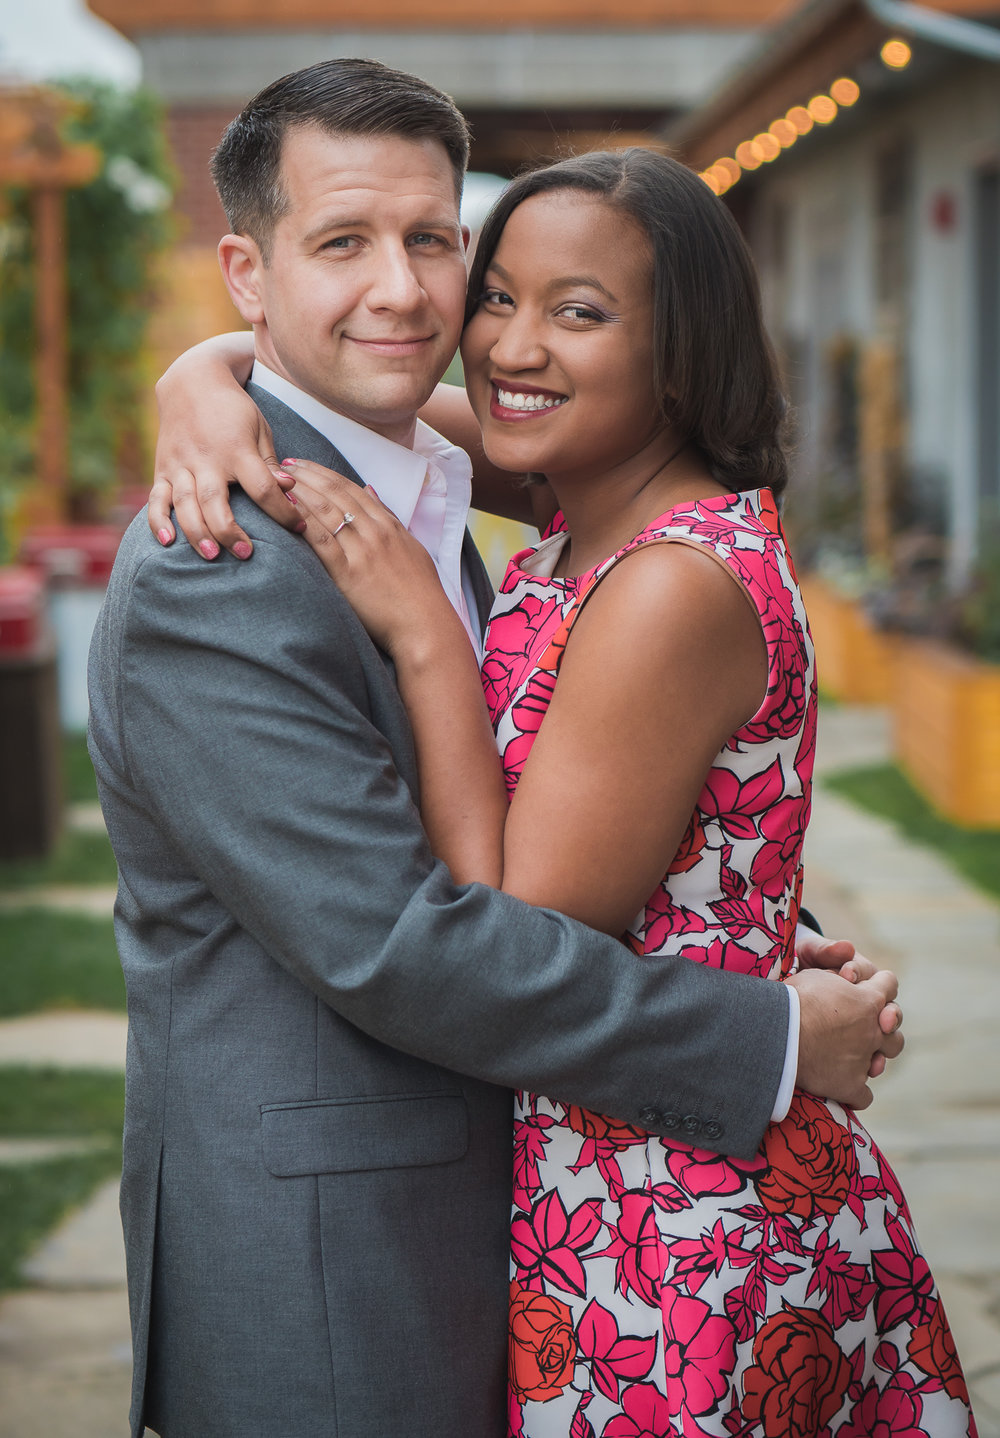 Jack and Cherise Engagement-4.jpg